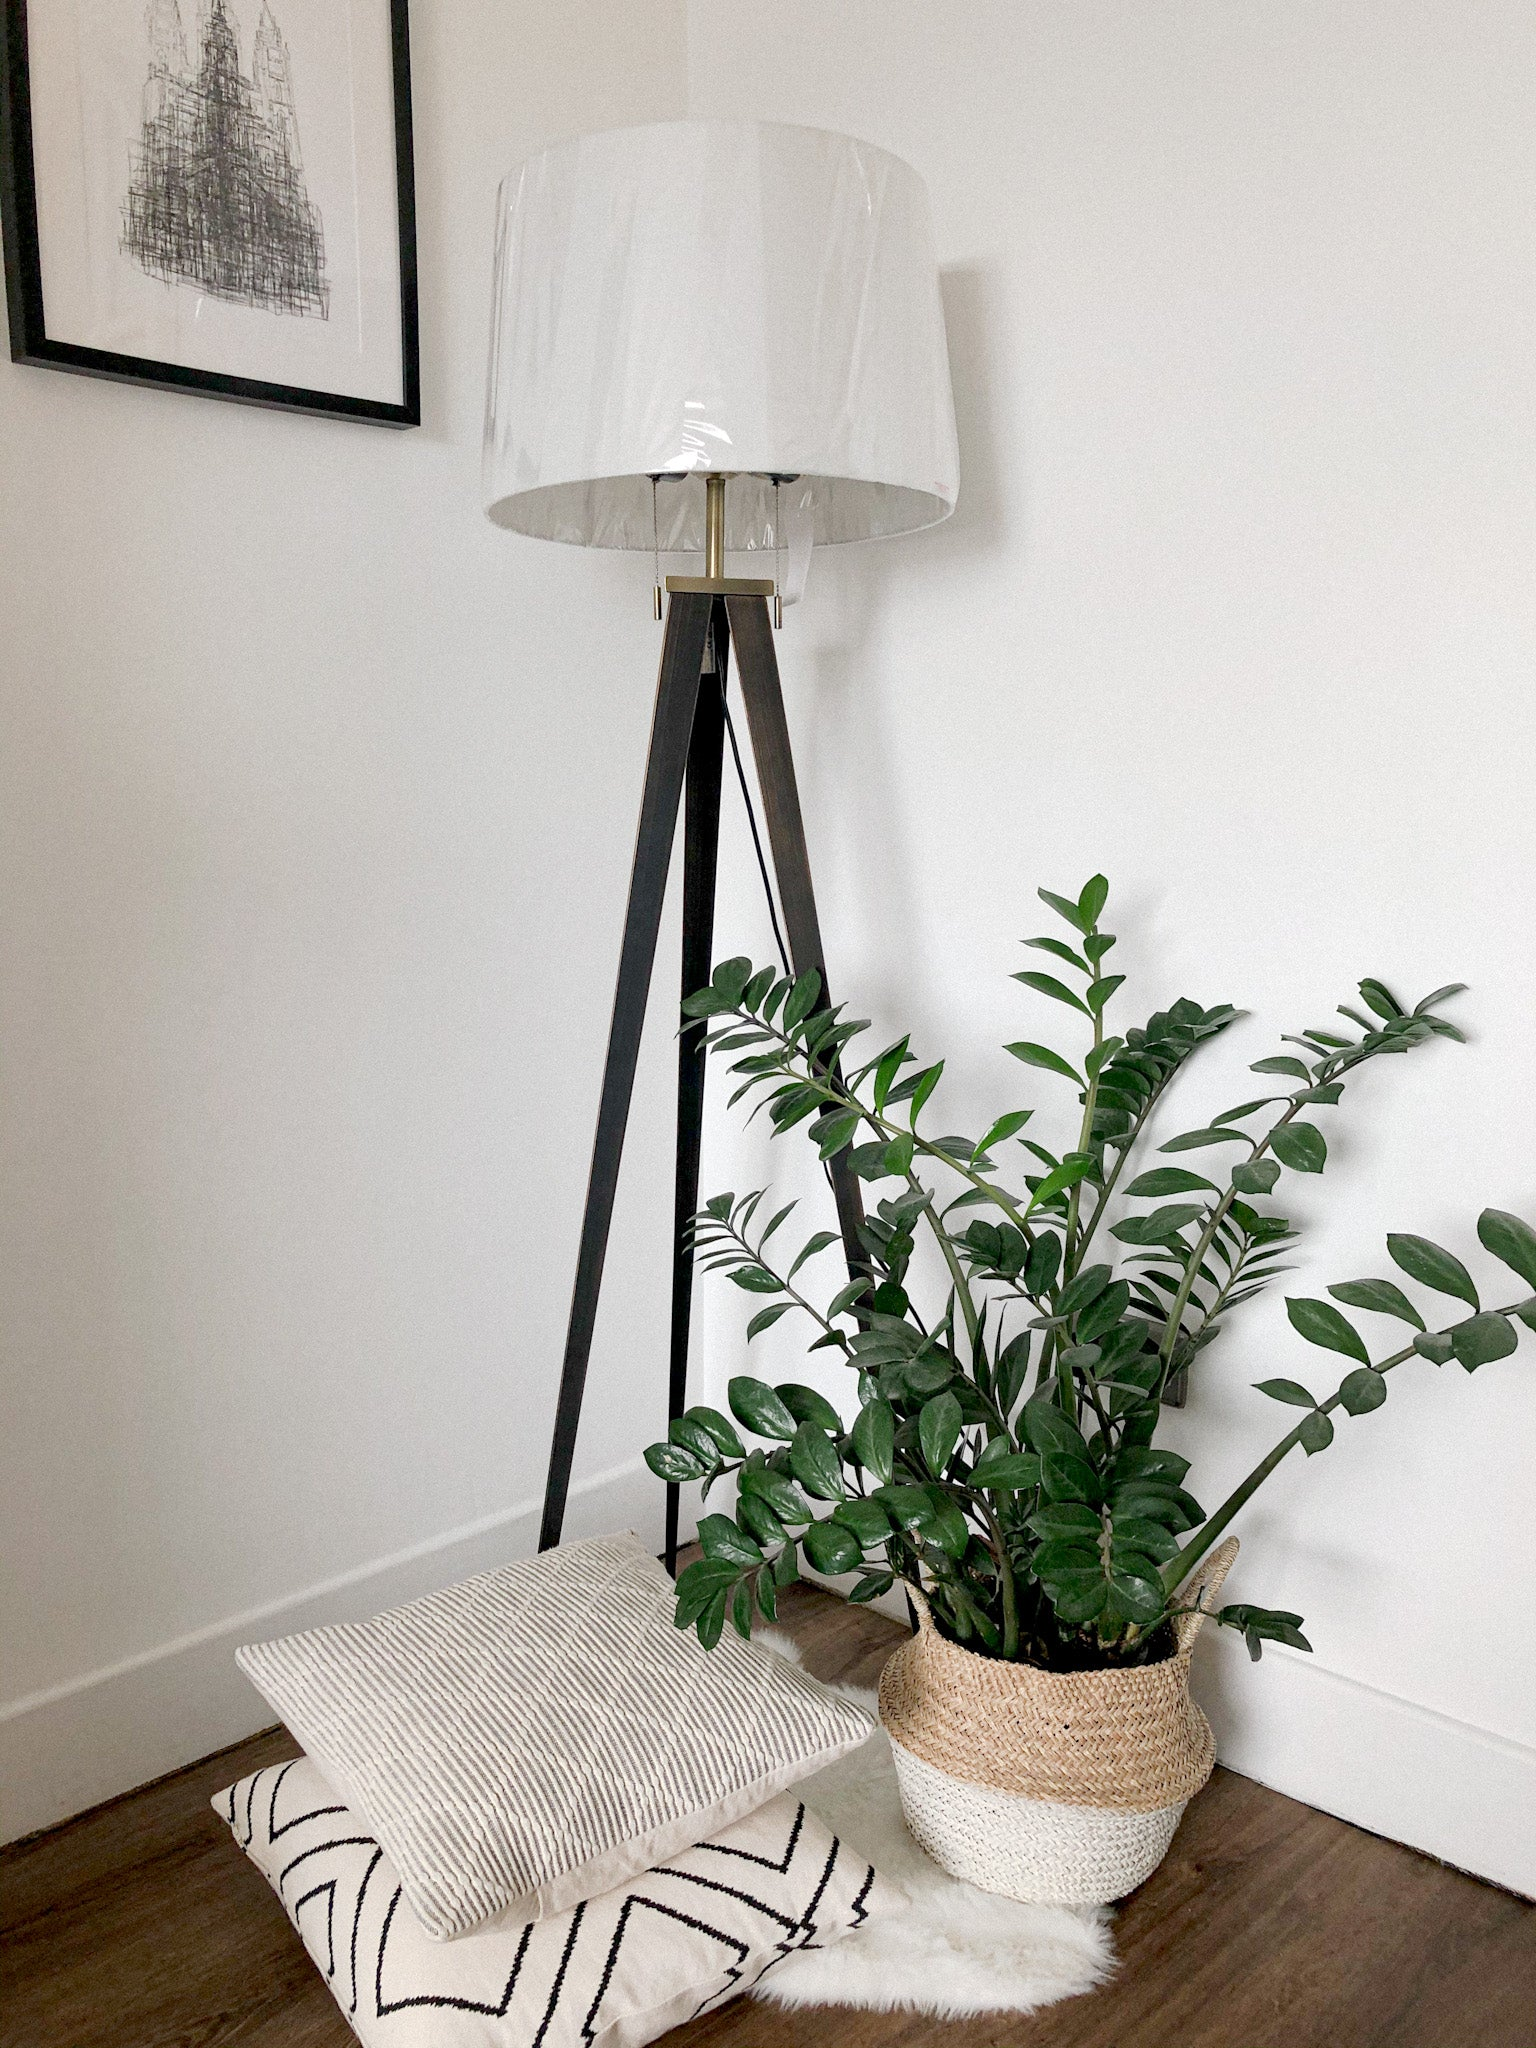 Brass Tripod Floor Lamp